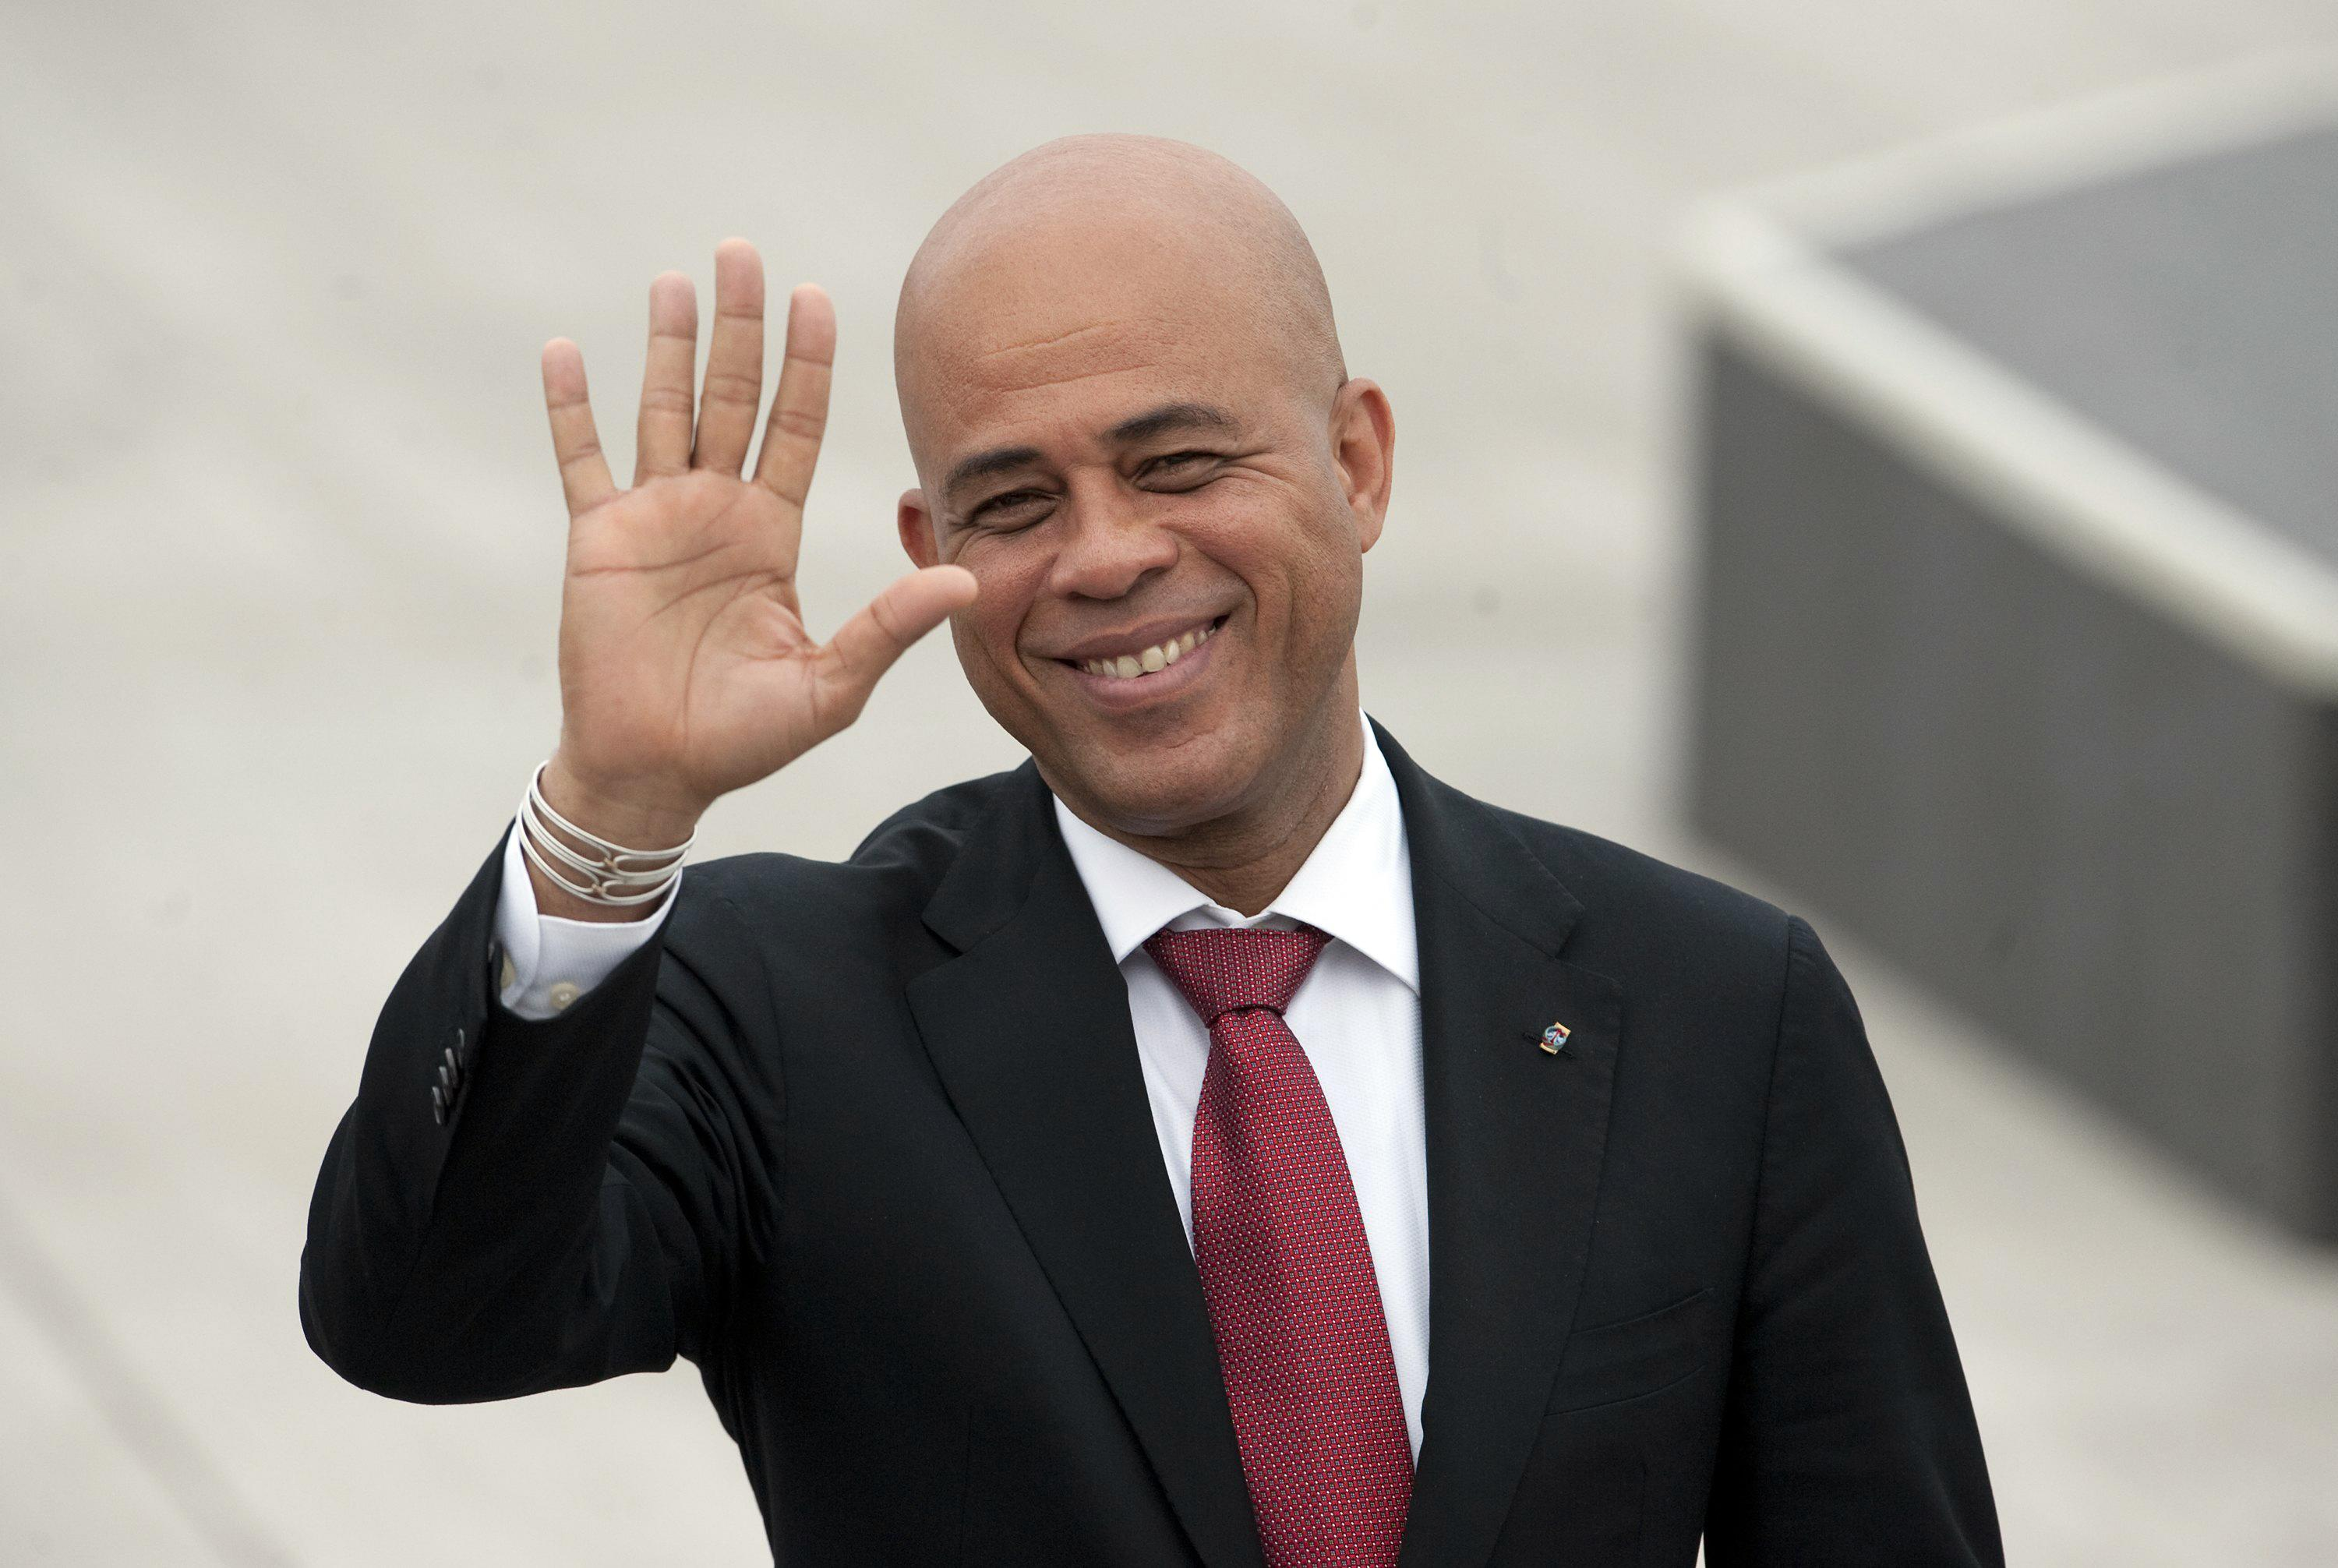 The President of Haiti Michel Joseph Martelly waves upon arrival at the international airport in Santiago on January 25, 2013 (AFP Photo/Claudio Santana)